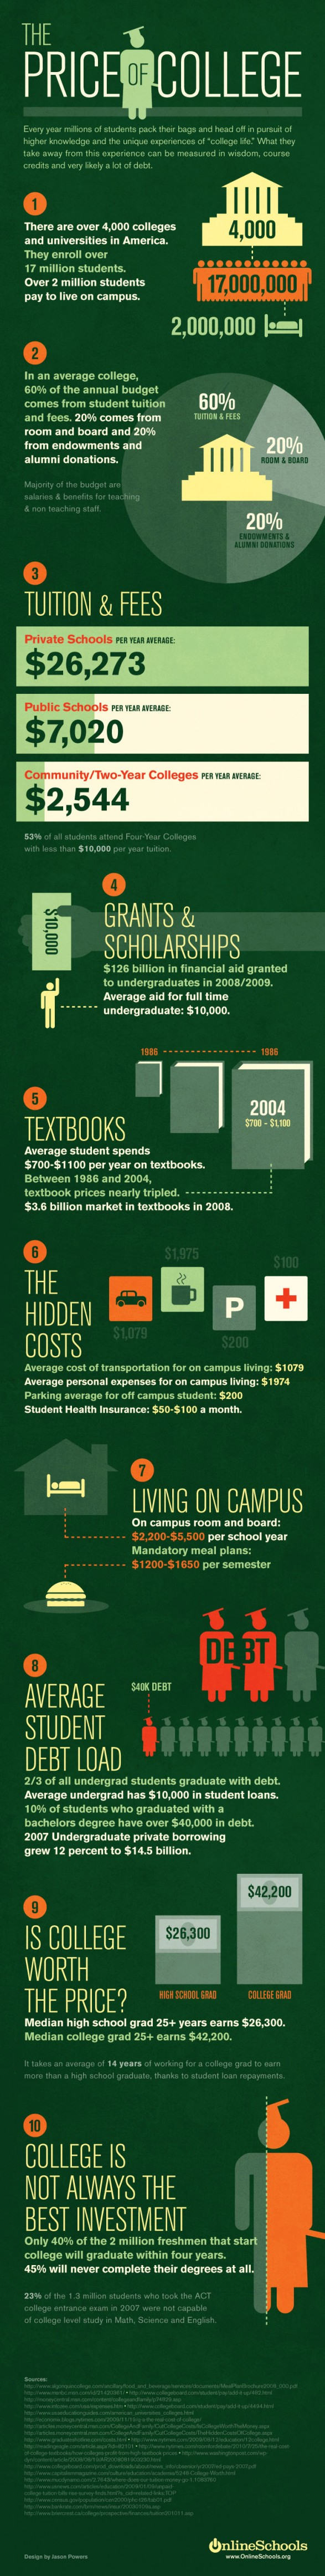 Infographic на magistrategy.ru: The Price of College